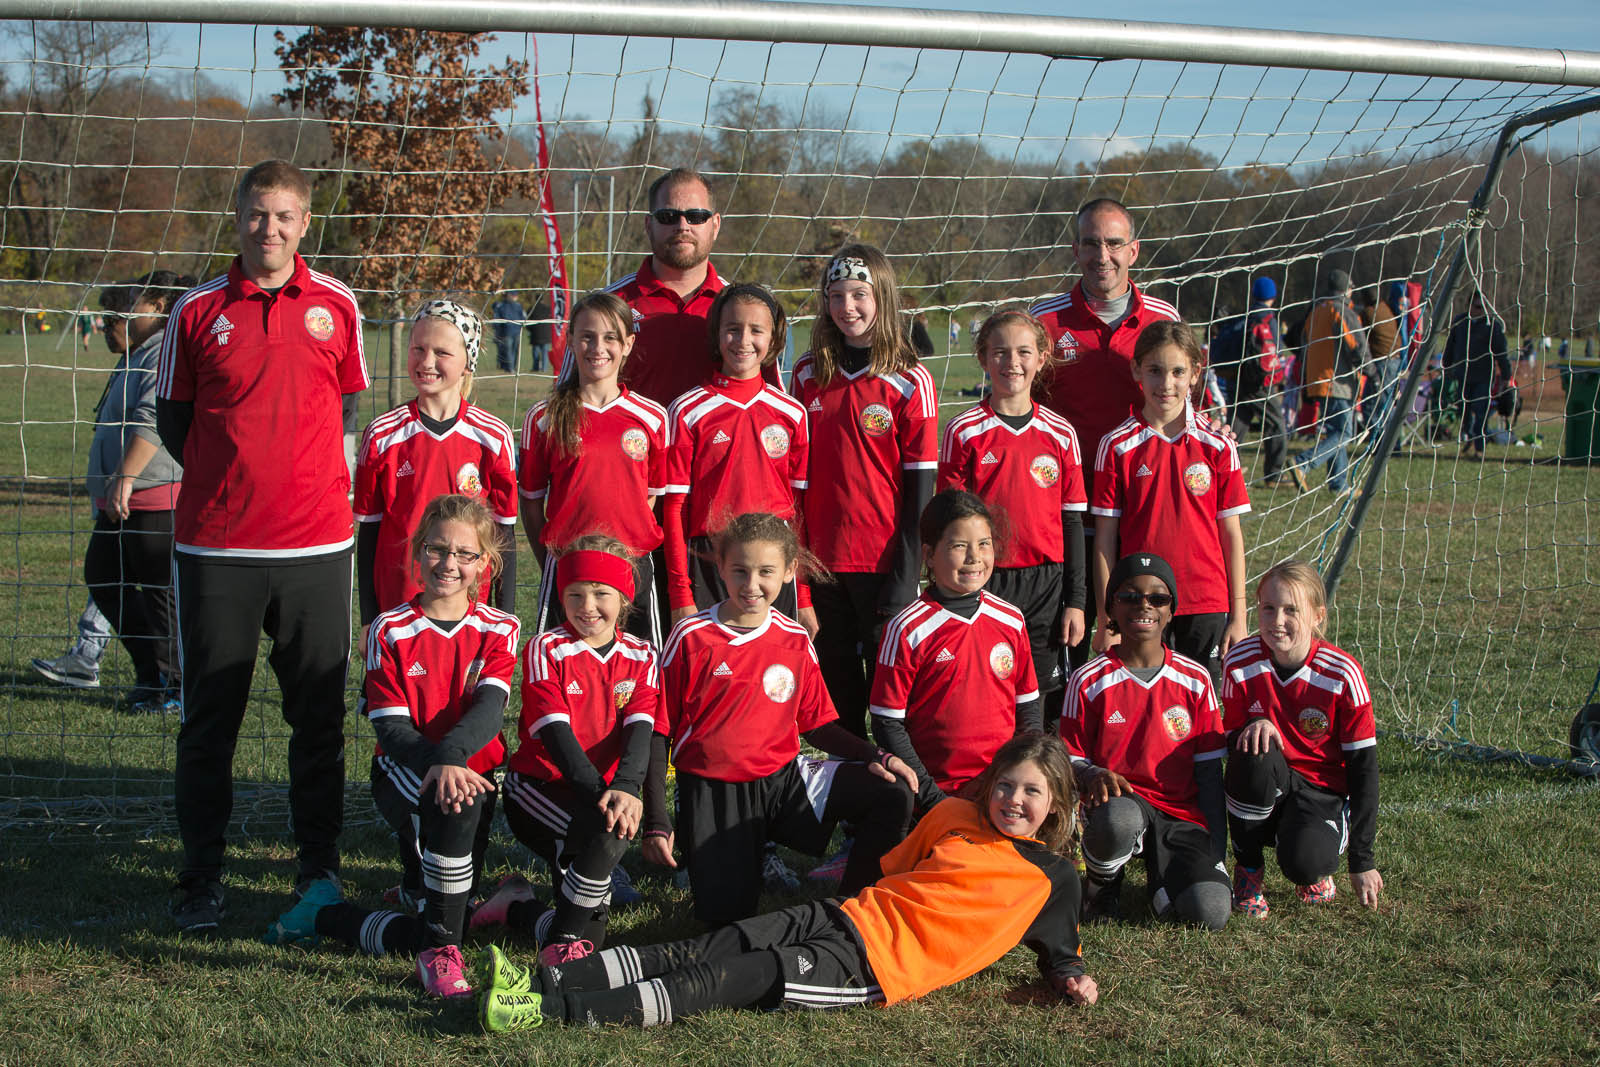 PAGS 2015 U11 Girls 1st Place and undefeated - Cecil Dynamite!